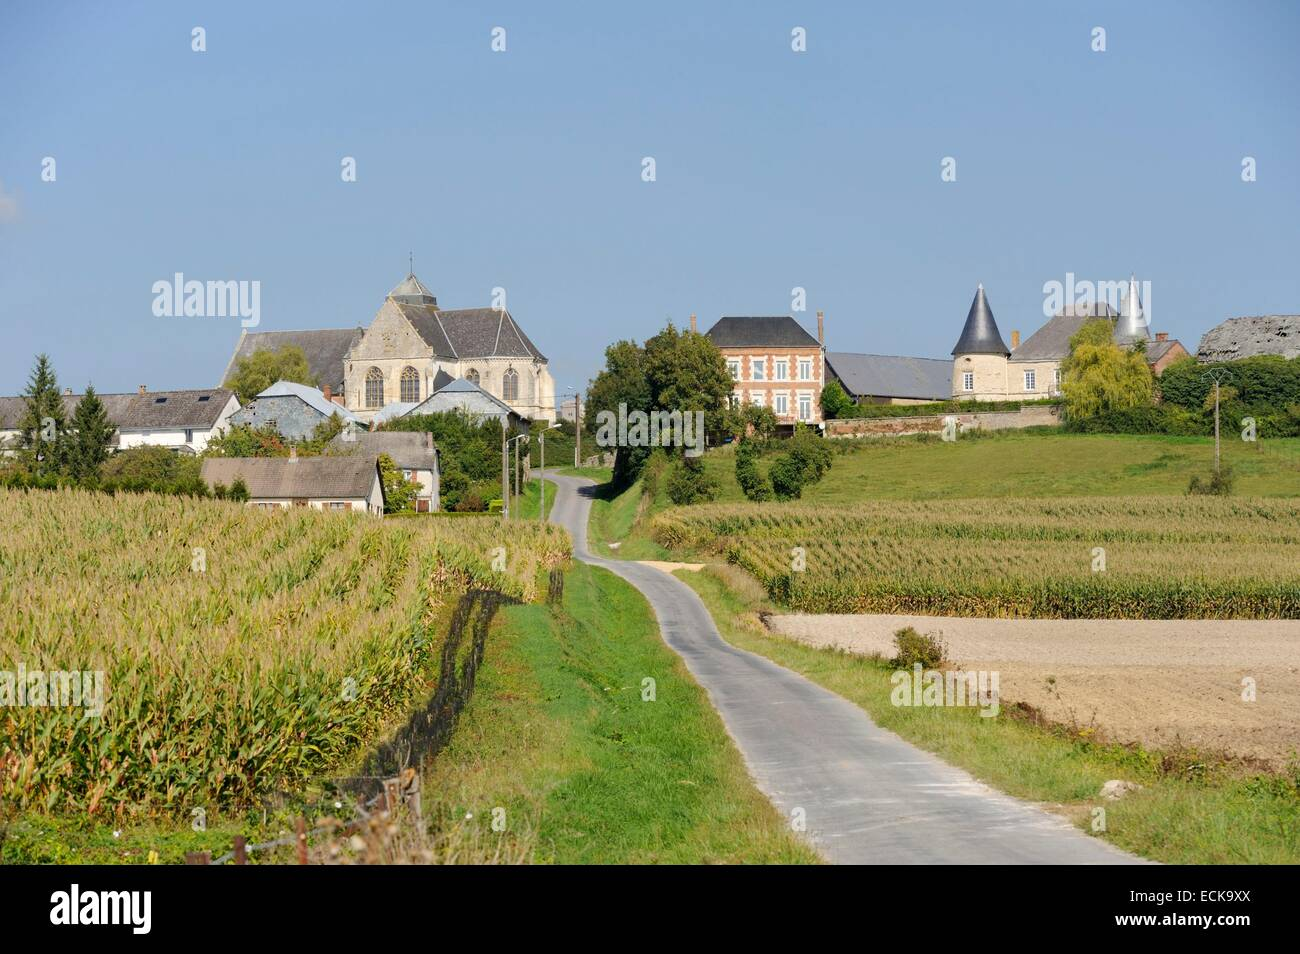 France, Ardennes, Sery, view of the curch and the castle - Stock Image